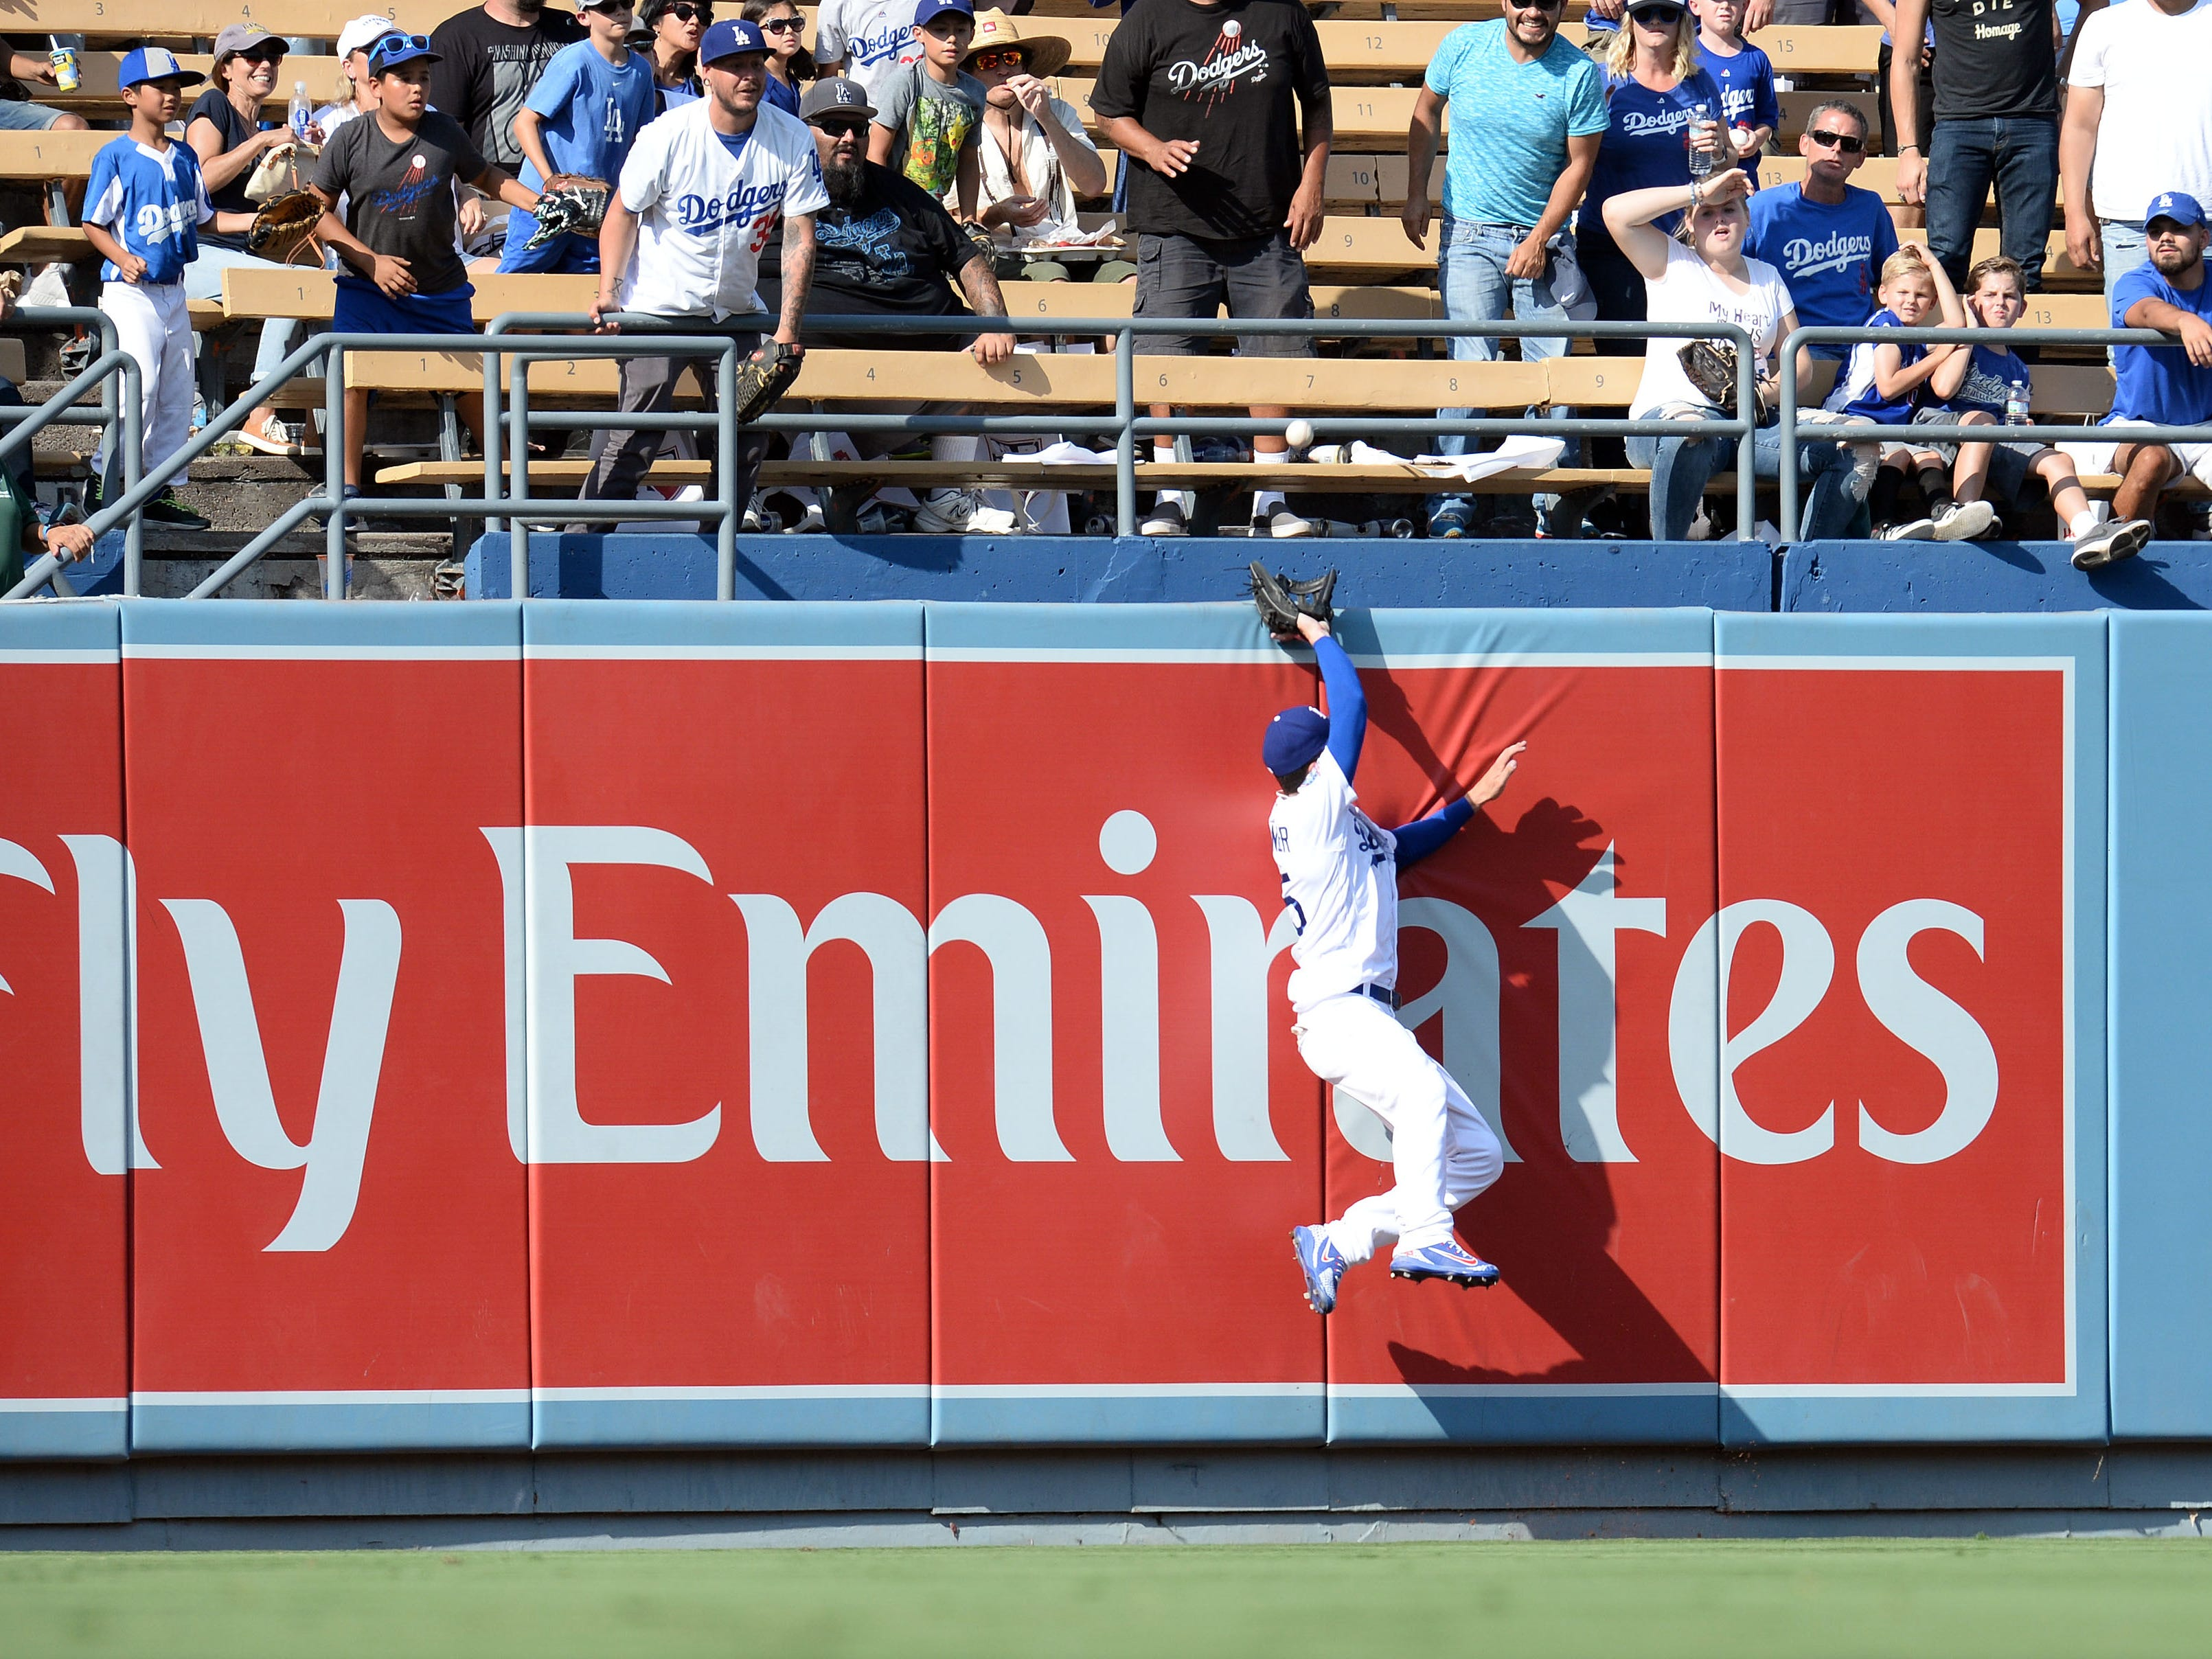 September 2, 2018; Los Angeles, CA, USA; Los Angeles Dodgers center fielder Cody Bellinger (35) misses catching the home run hit by Arizona Diamondbacks second baseman Daniel Descalso (3) in the ninth inning at Dodger Stadium. Mandatory Credit: Gary A. Vasquez-USA TODAY Sports